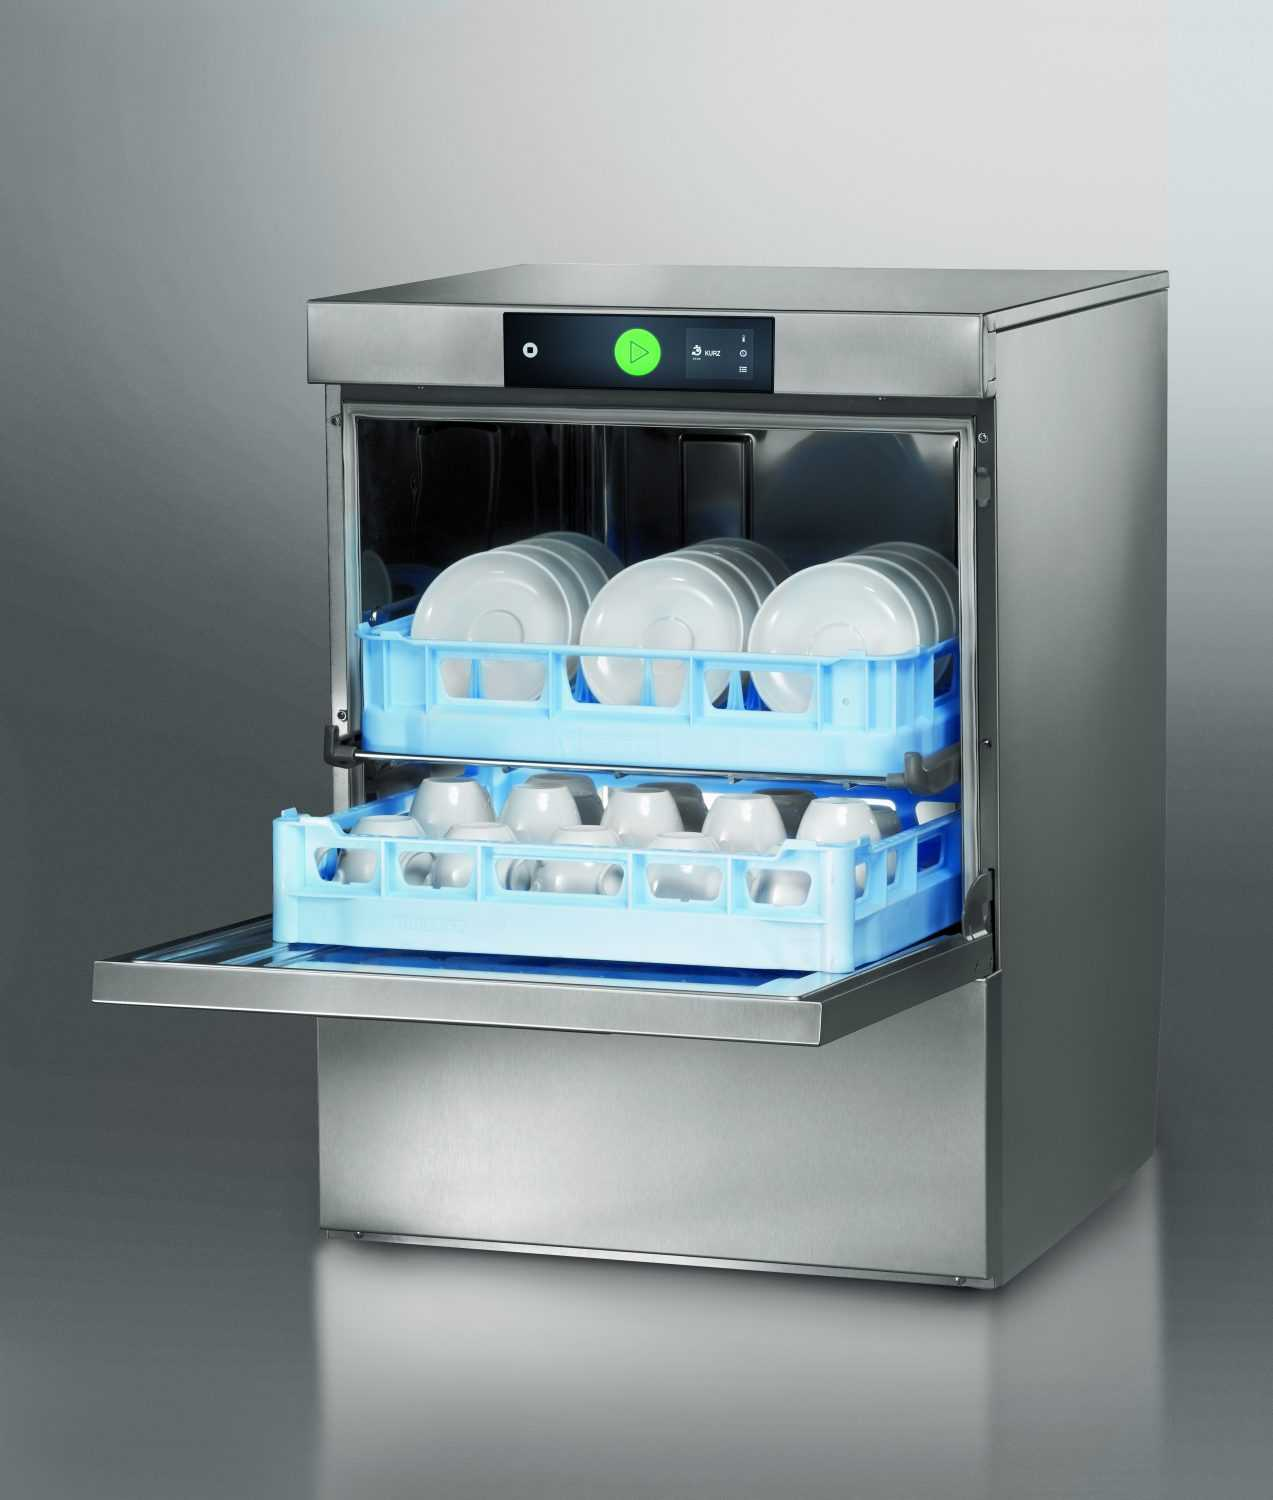 Hobart PREMAX FP-90B Undercounter Dishwasher with Integrated Dryer